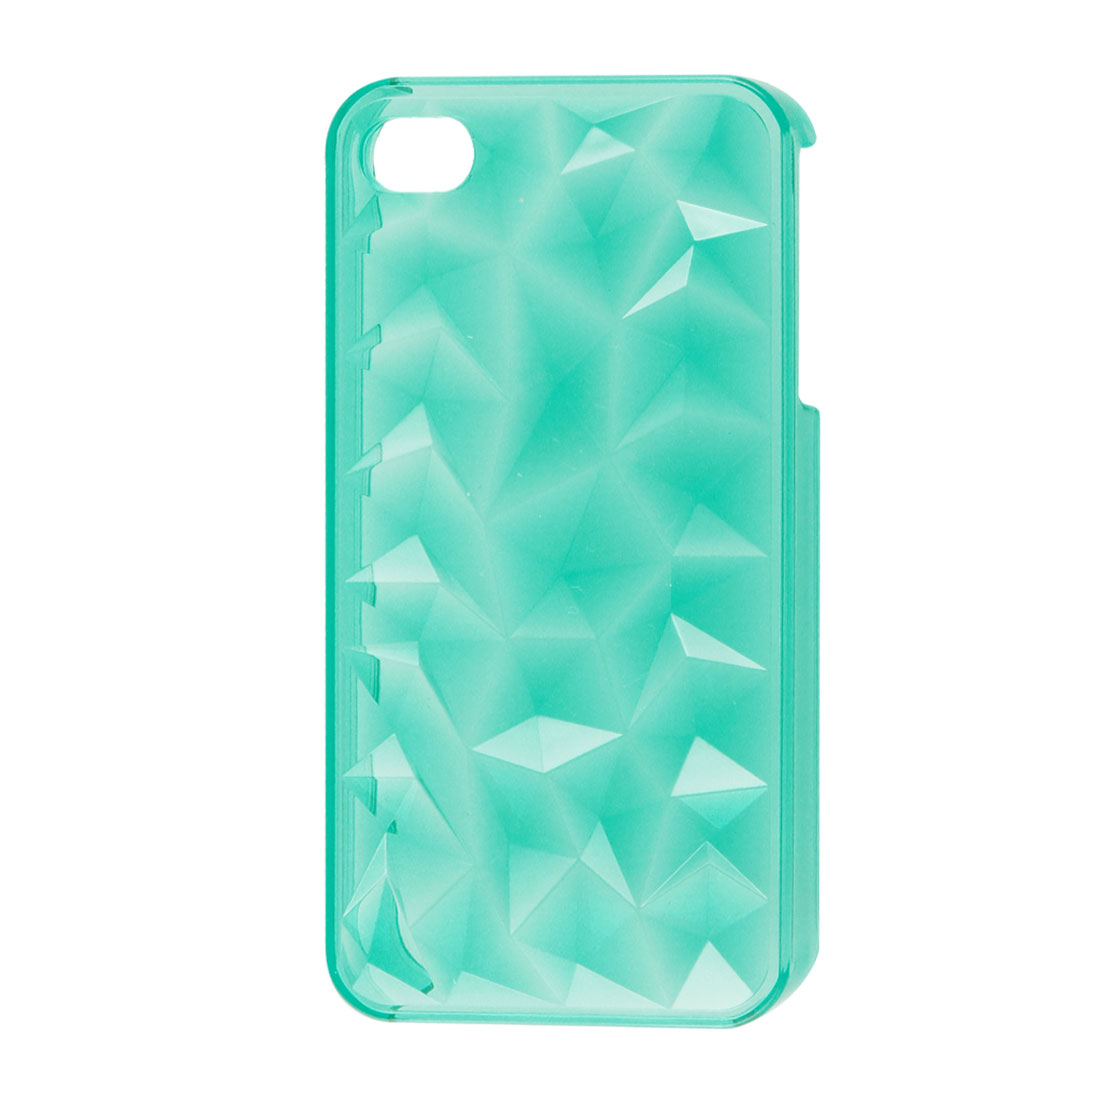 Clear Turquoise Color Hard Plastic Protector Back Cover for iPhone 4 4S 4GS